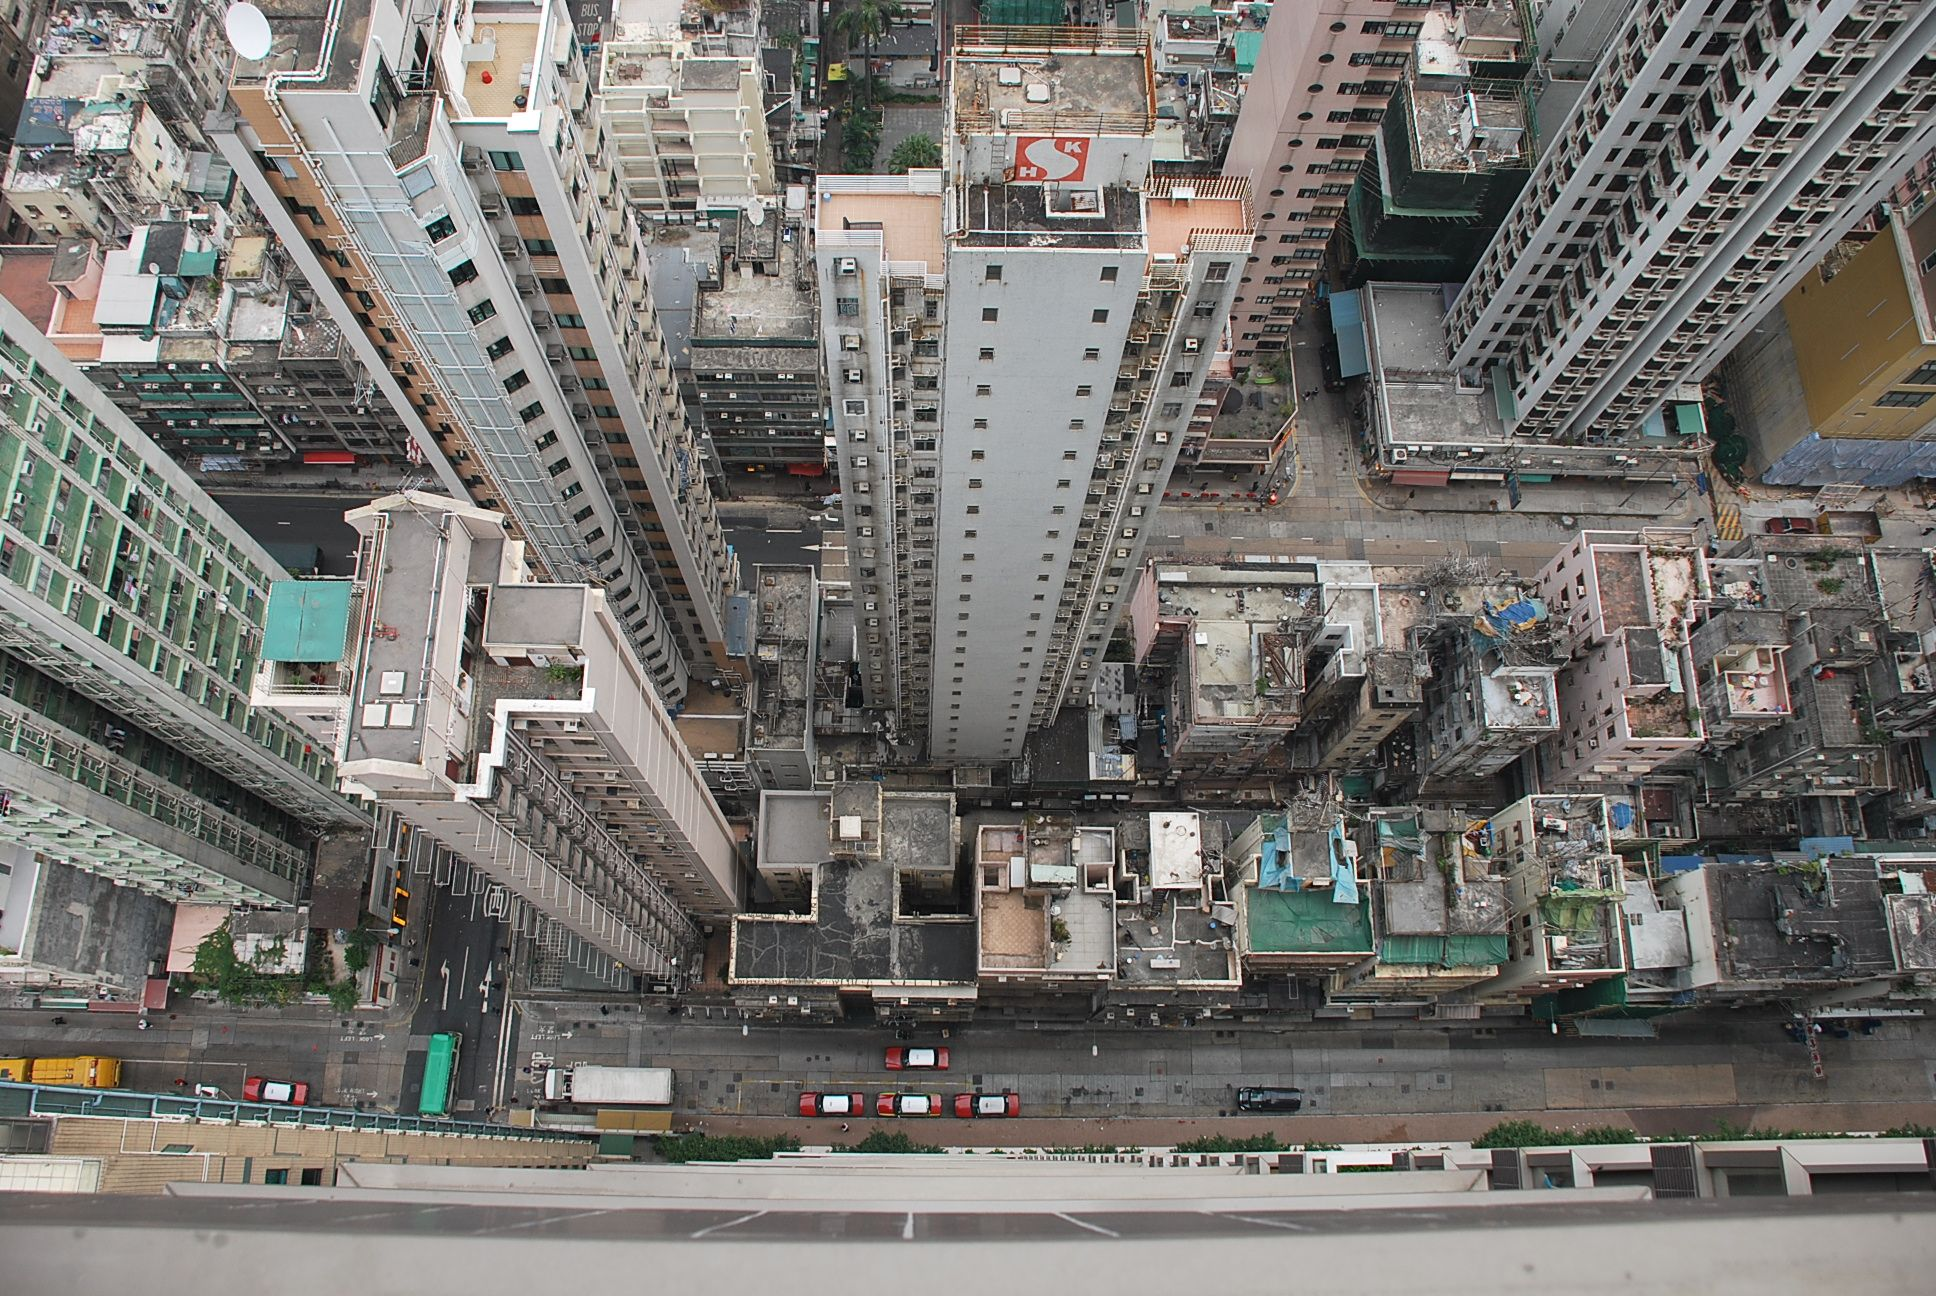 Roofs in Hong Kong